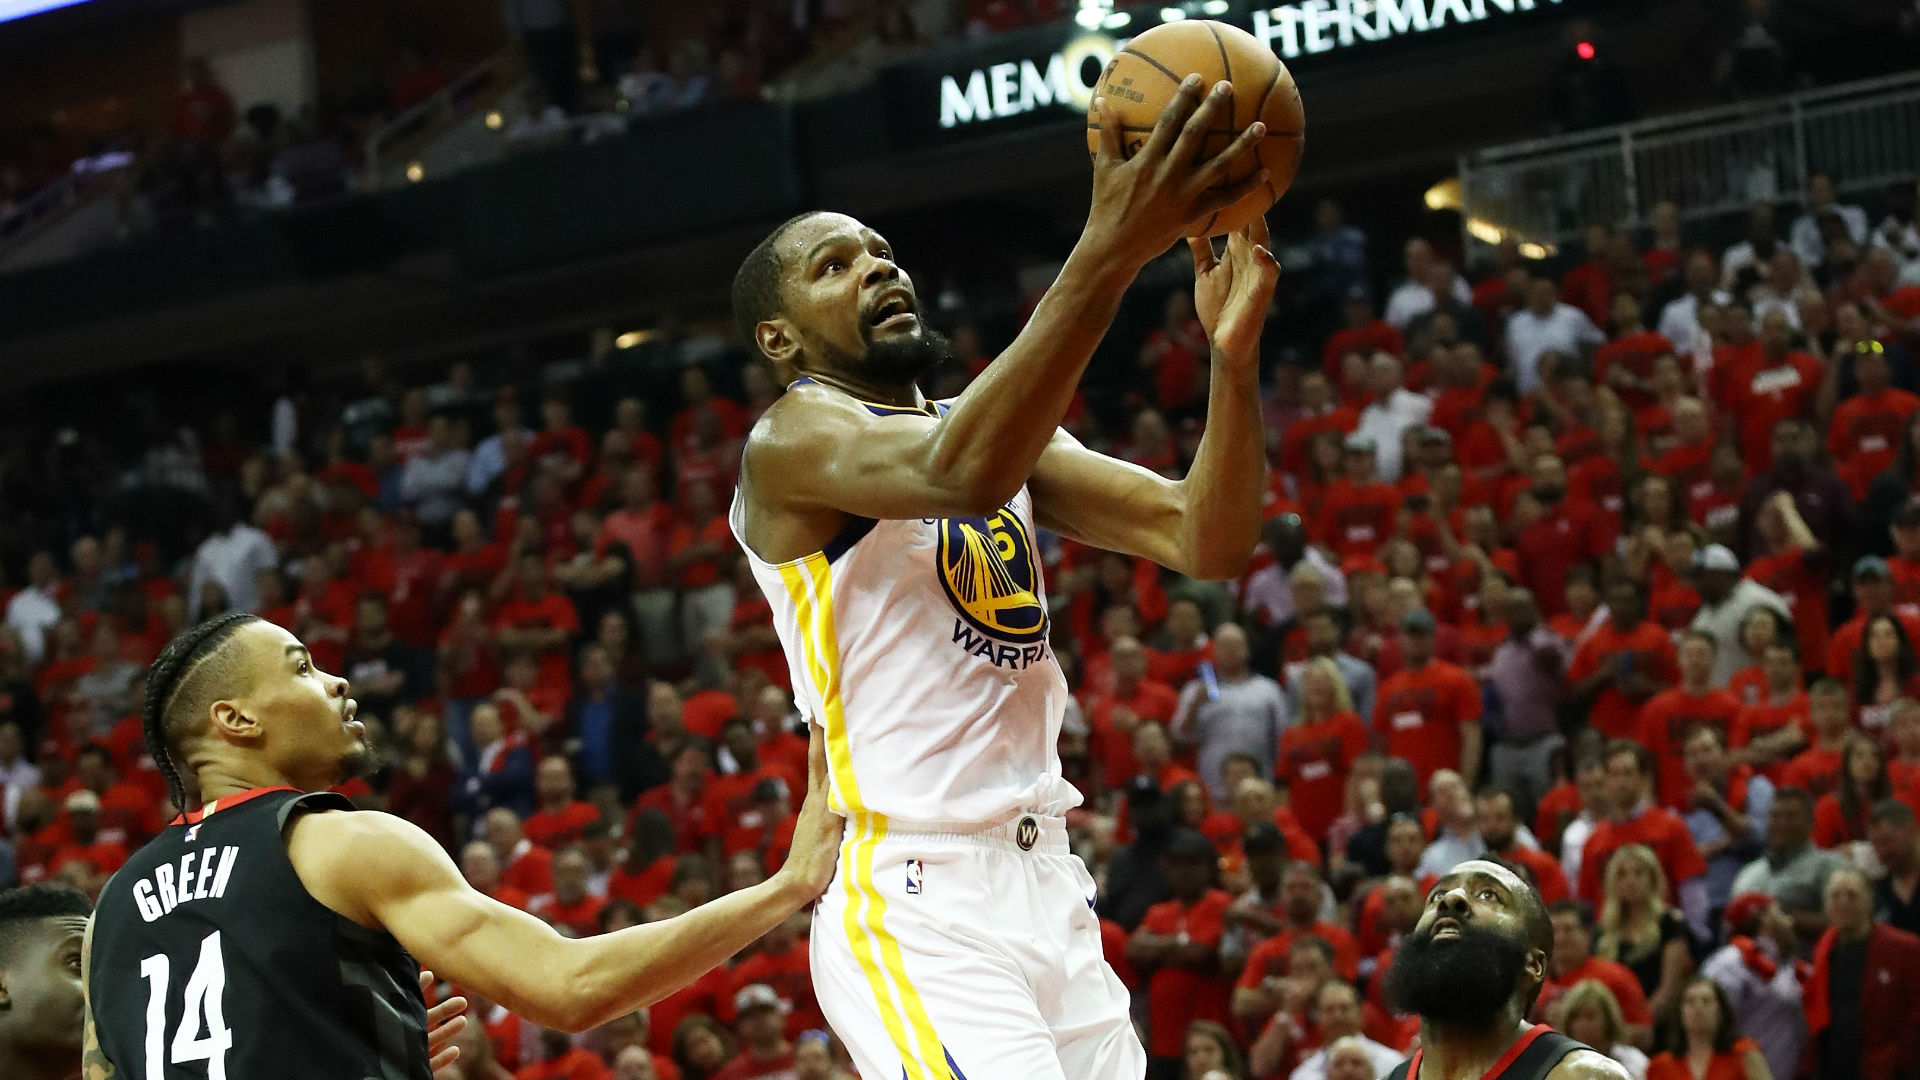 Steve Kerr: Warriors bracing for 'incredibly difficult' Game 4 vs. Rockets